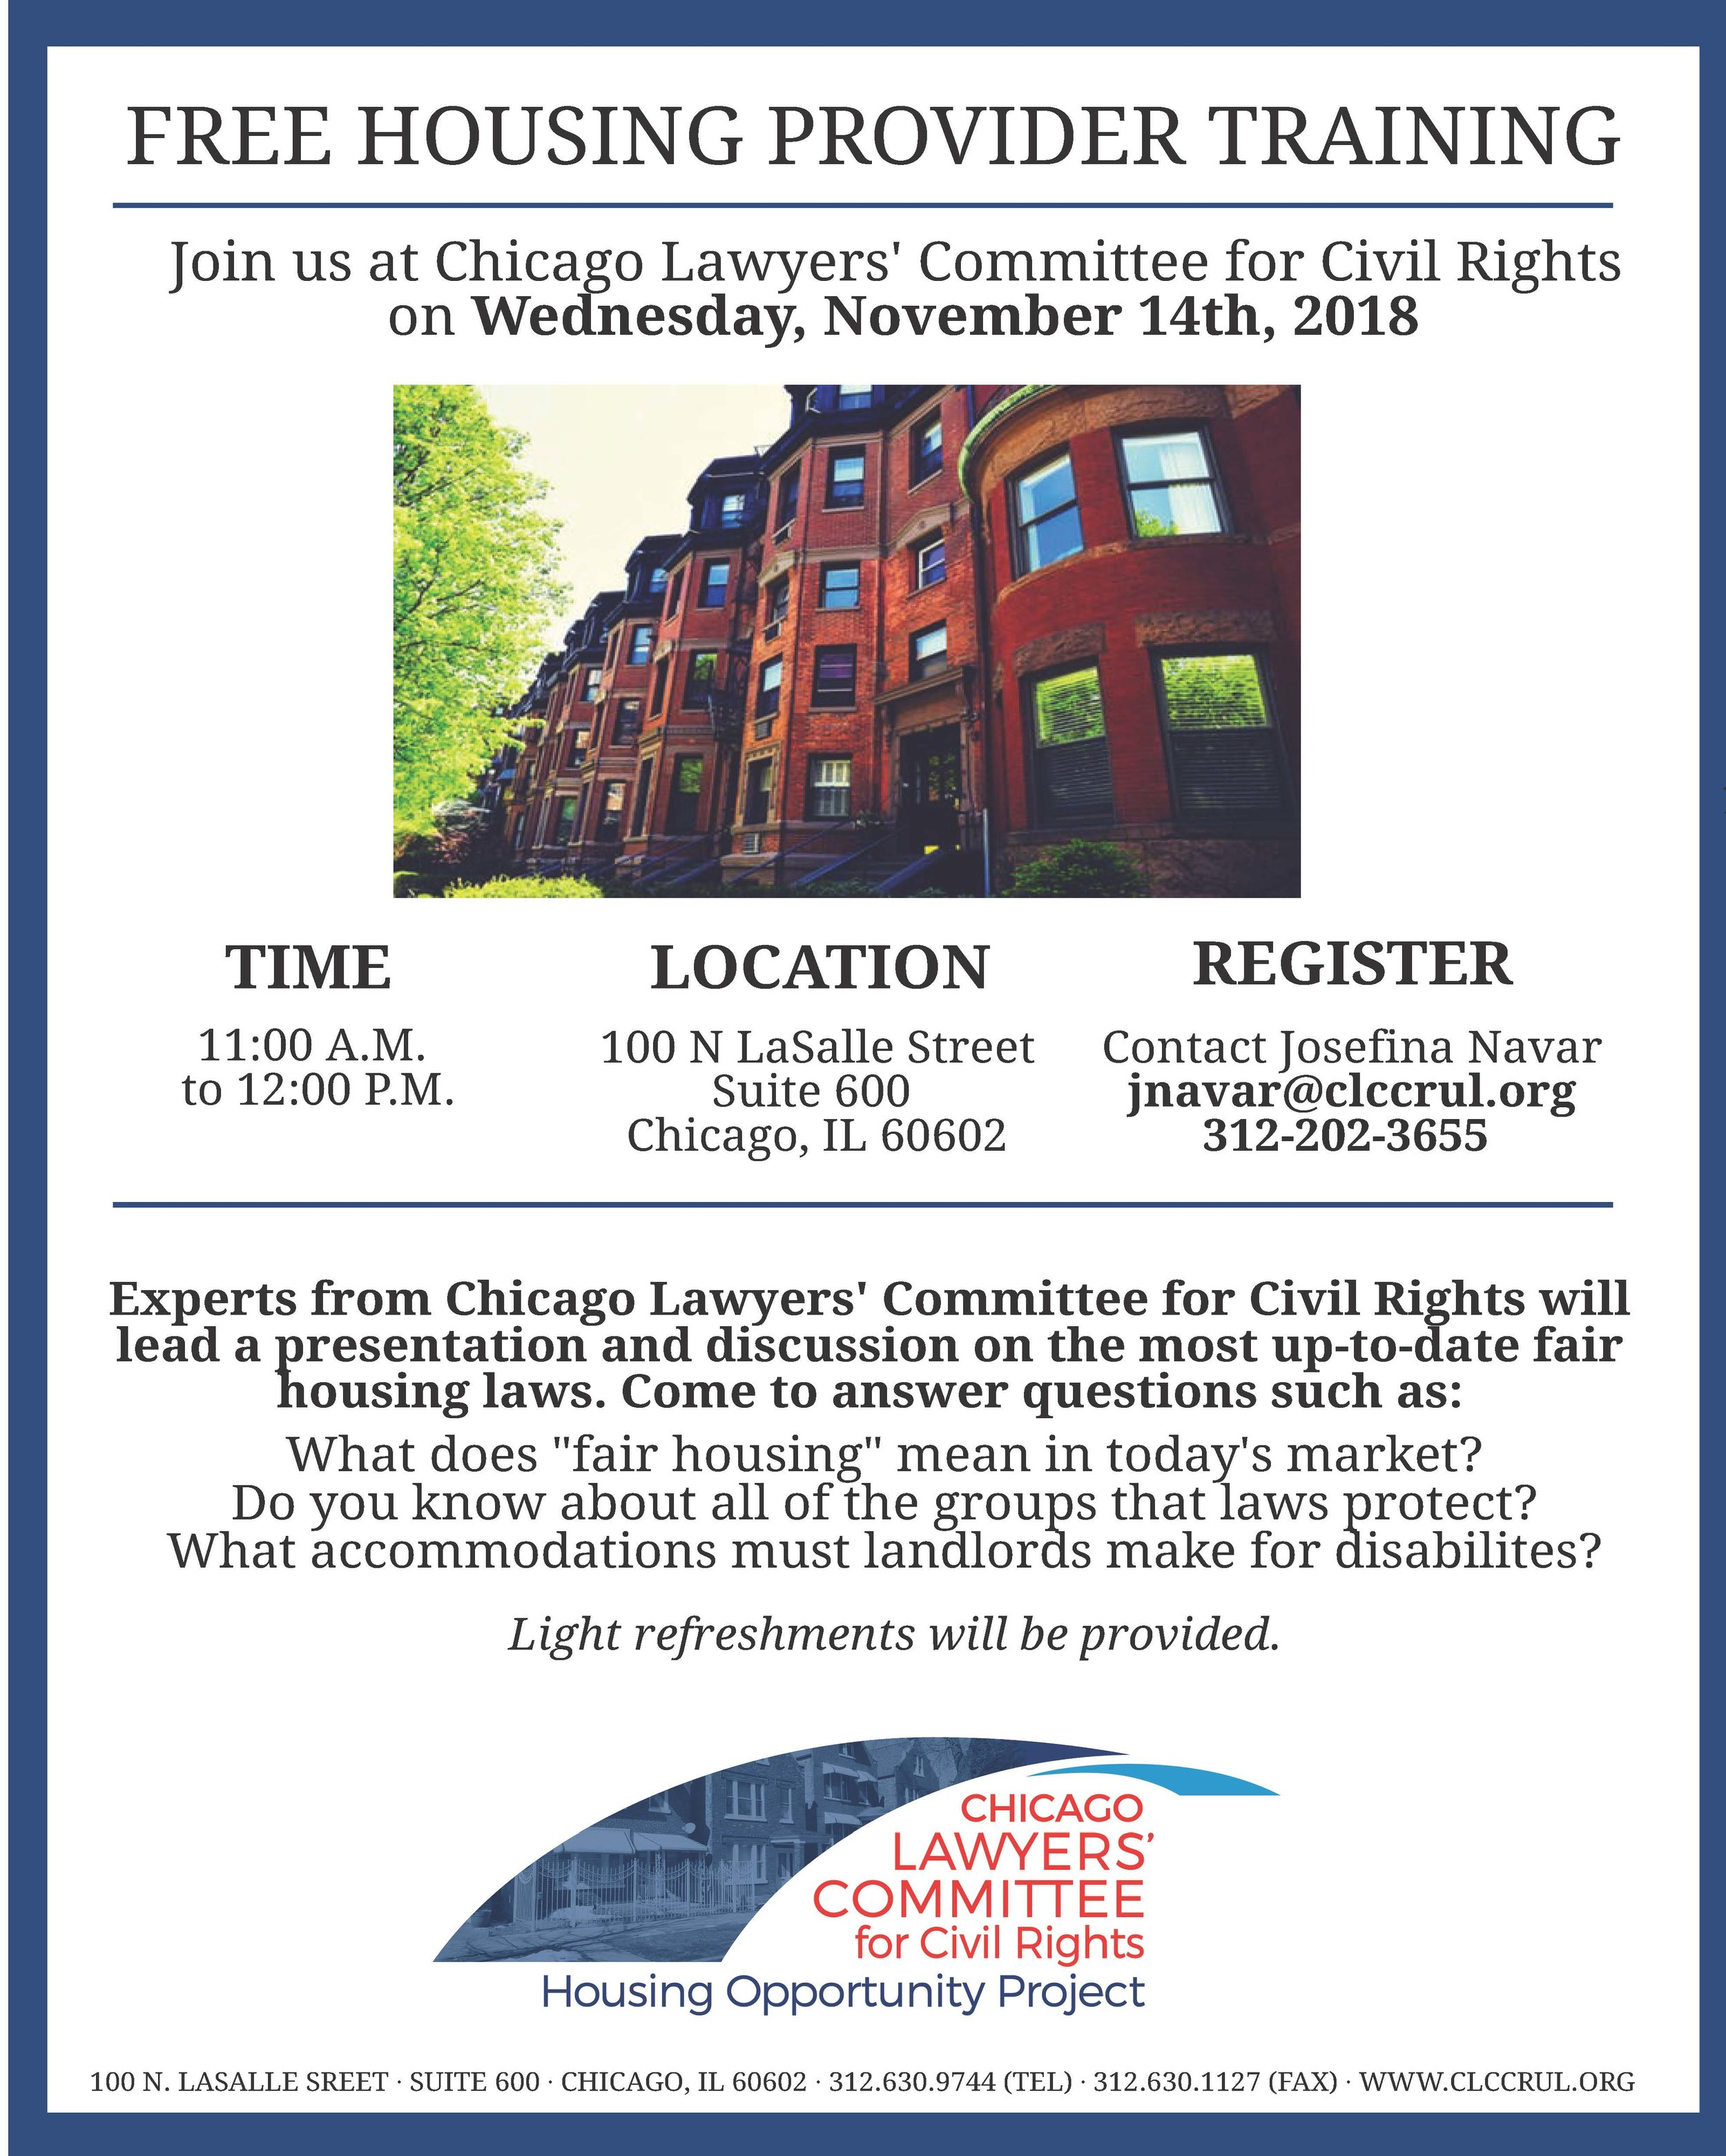 11.14.18 Landlord Training Flyer.jpg